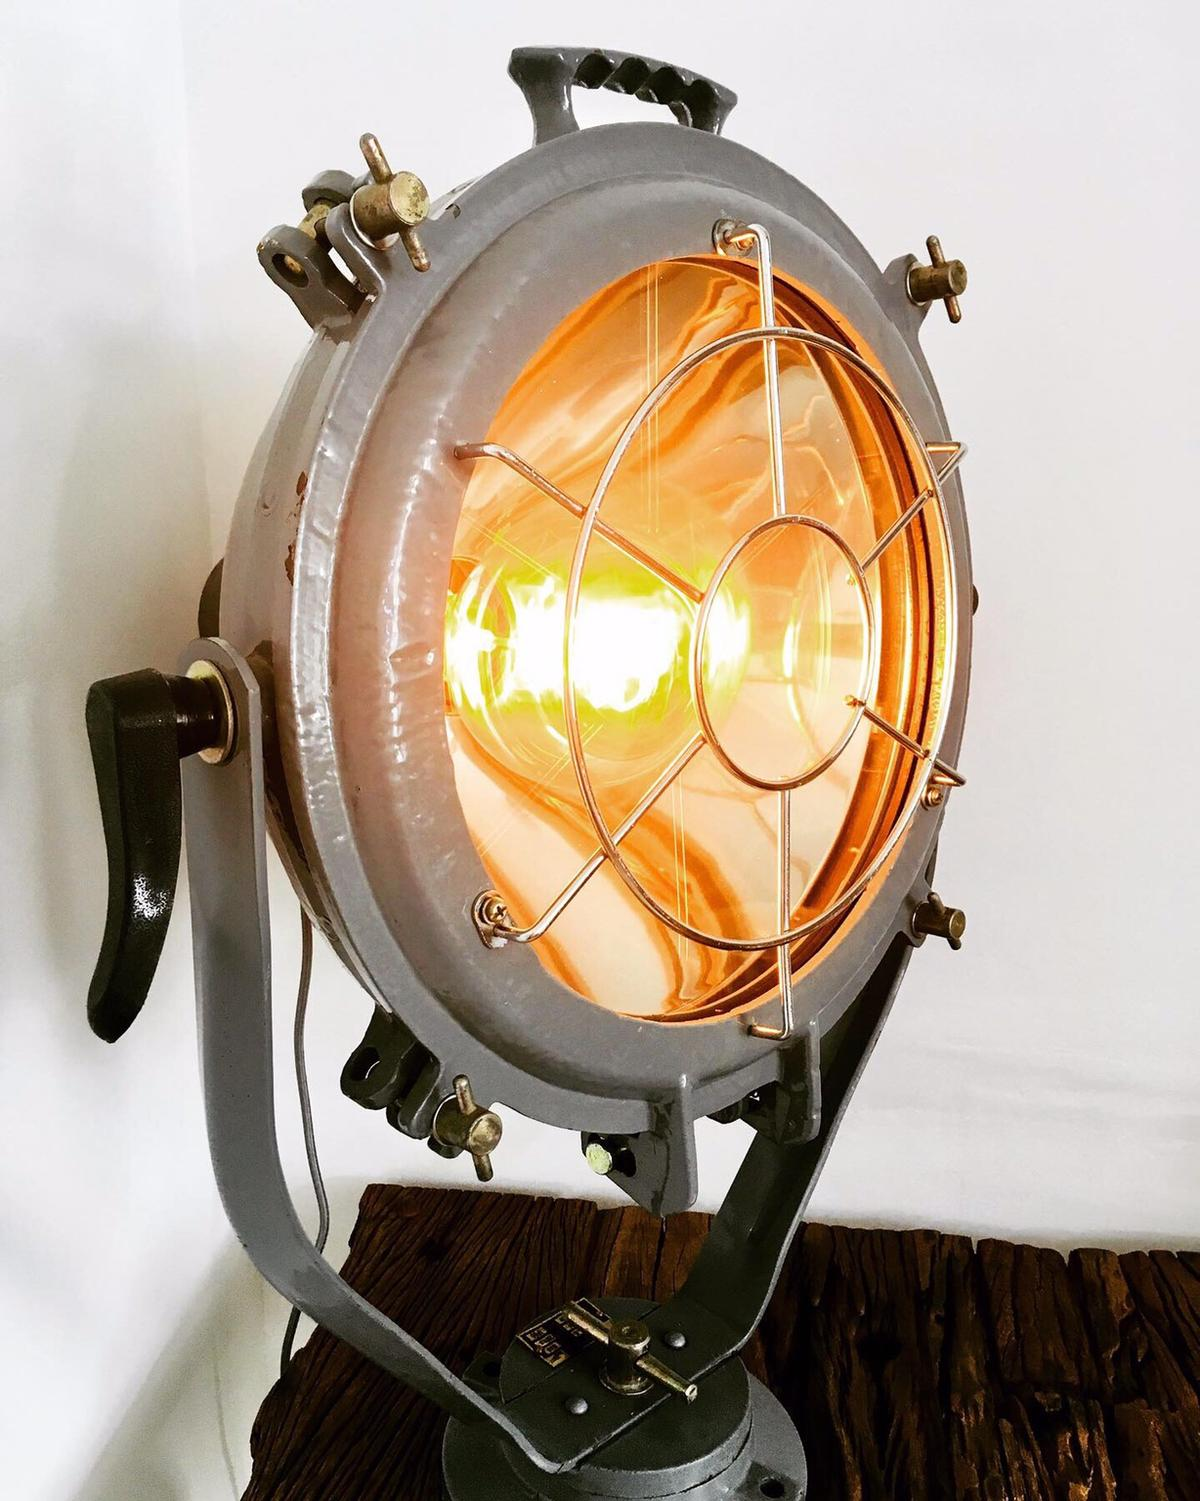 Stunning vintage marine spot light.. made of steel and accompanied with age related wear, it looks fantastic. Converted to ES, it looks the part with a vintage filament bulb. #vintage#filament#marinelighting#london#paris#milan#rusticdecor#steel#industrialdesign#bespoke#yacht